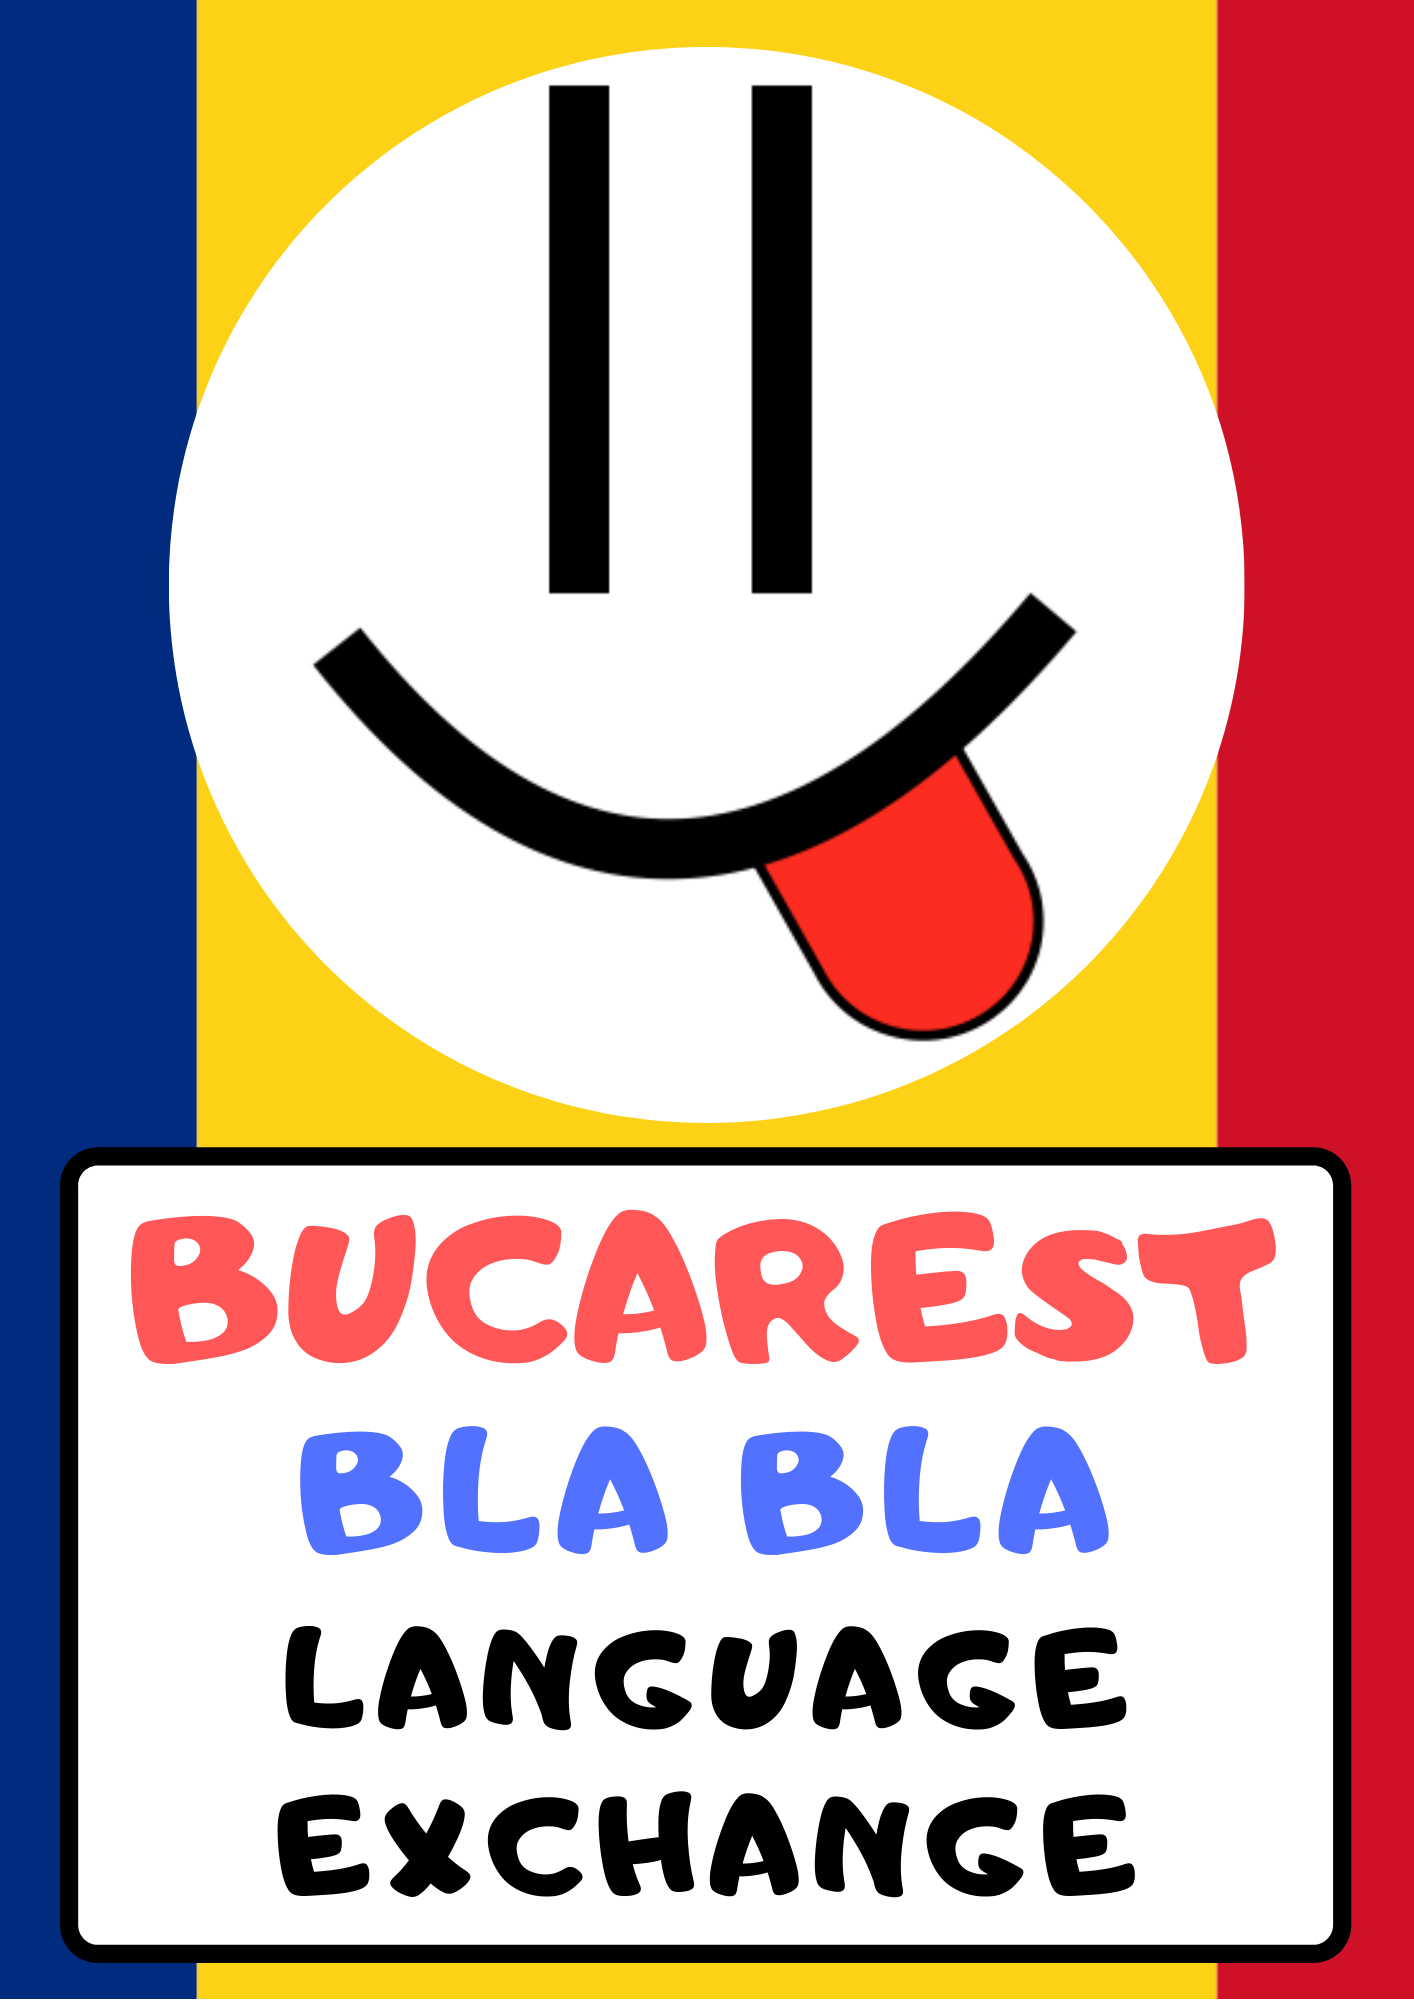 Bucarest BlaBla Language Exchange